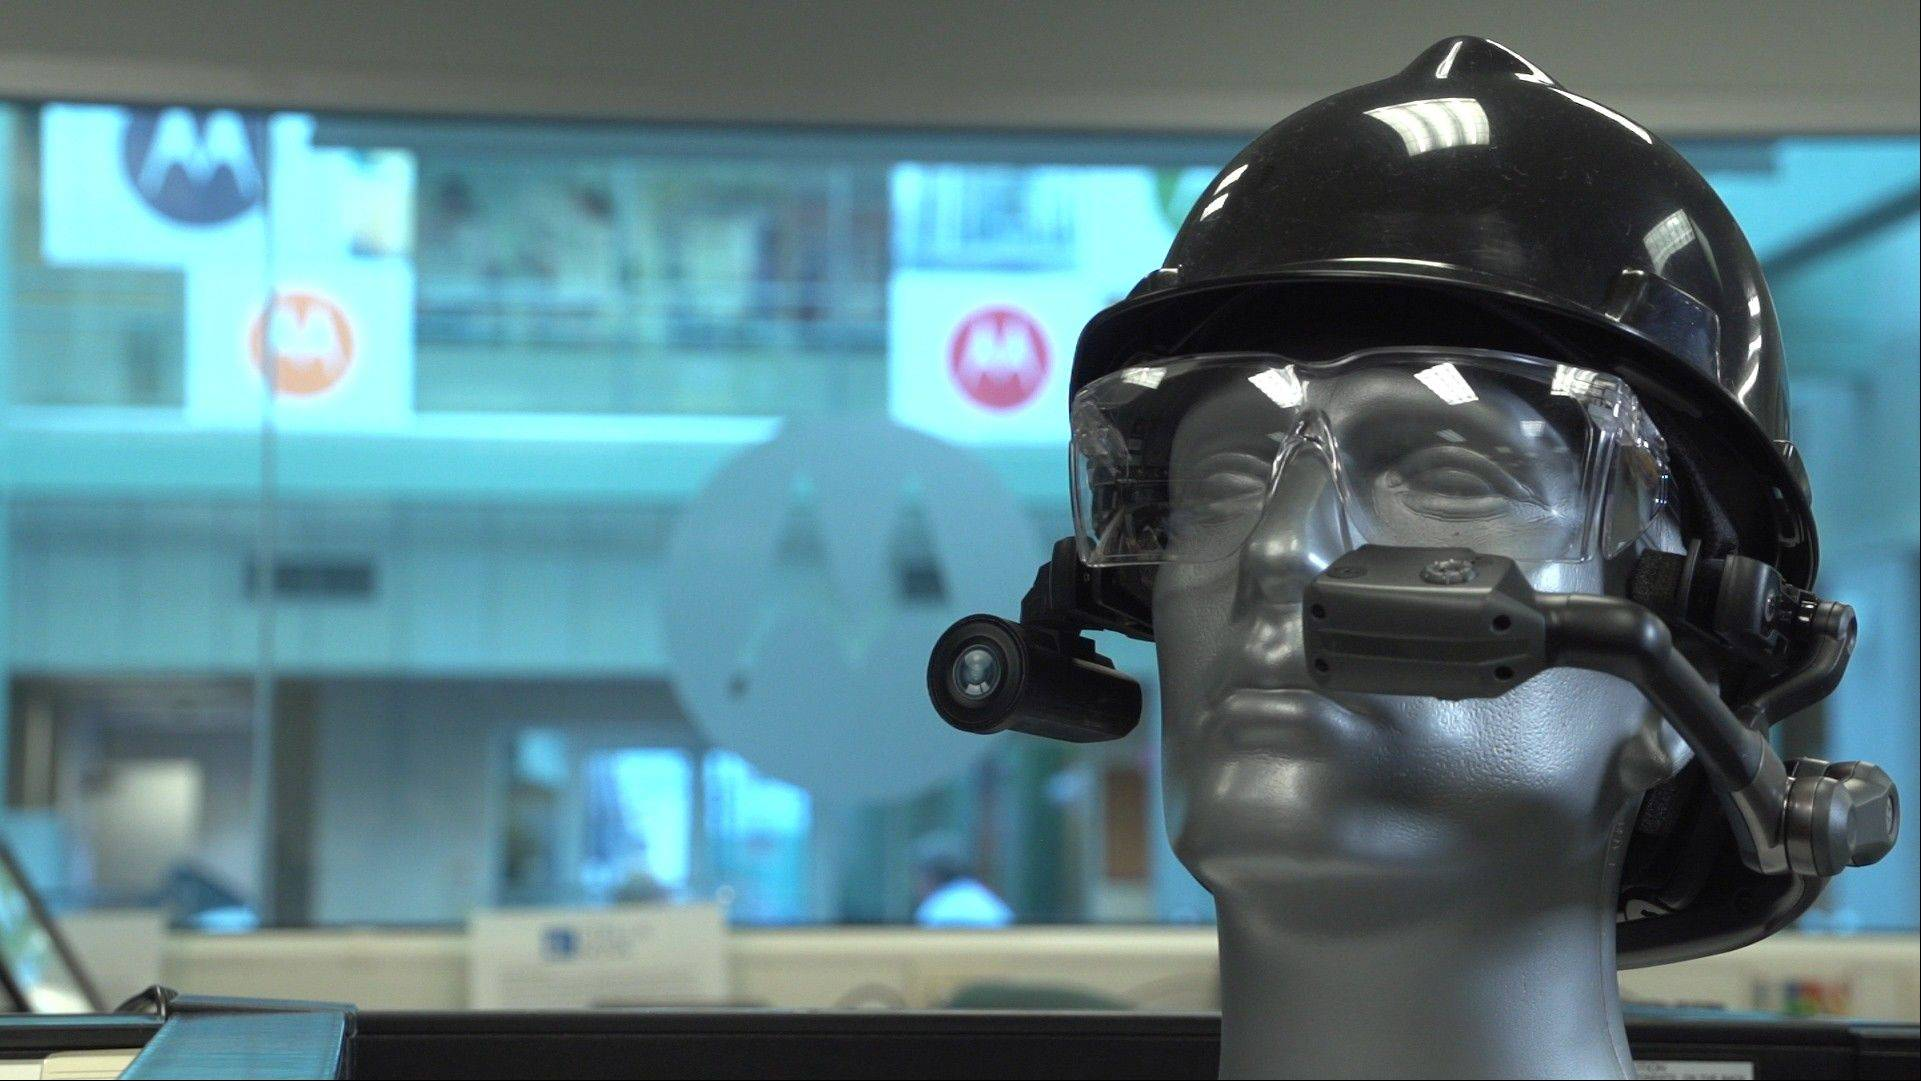 Schaumburg-based Motorola Solutions debuts the HC1, a wearable computer in the form of a headset that takes voice commands for business and government workers. It could sell for $4,000 to $5,000.